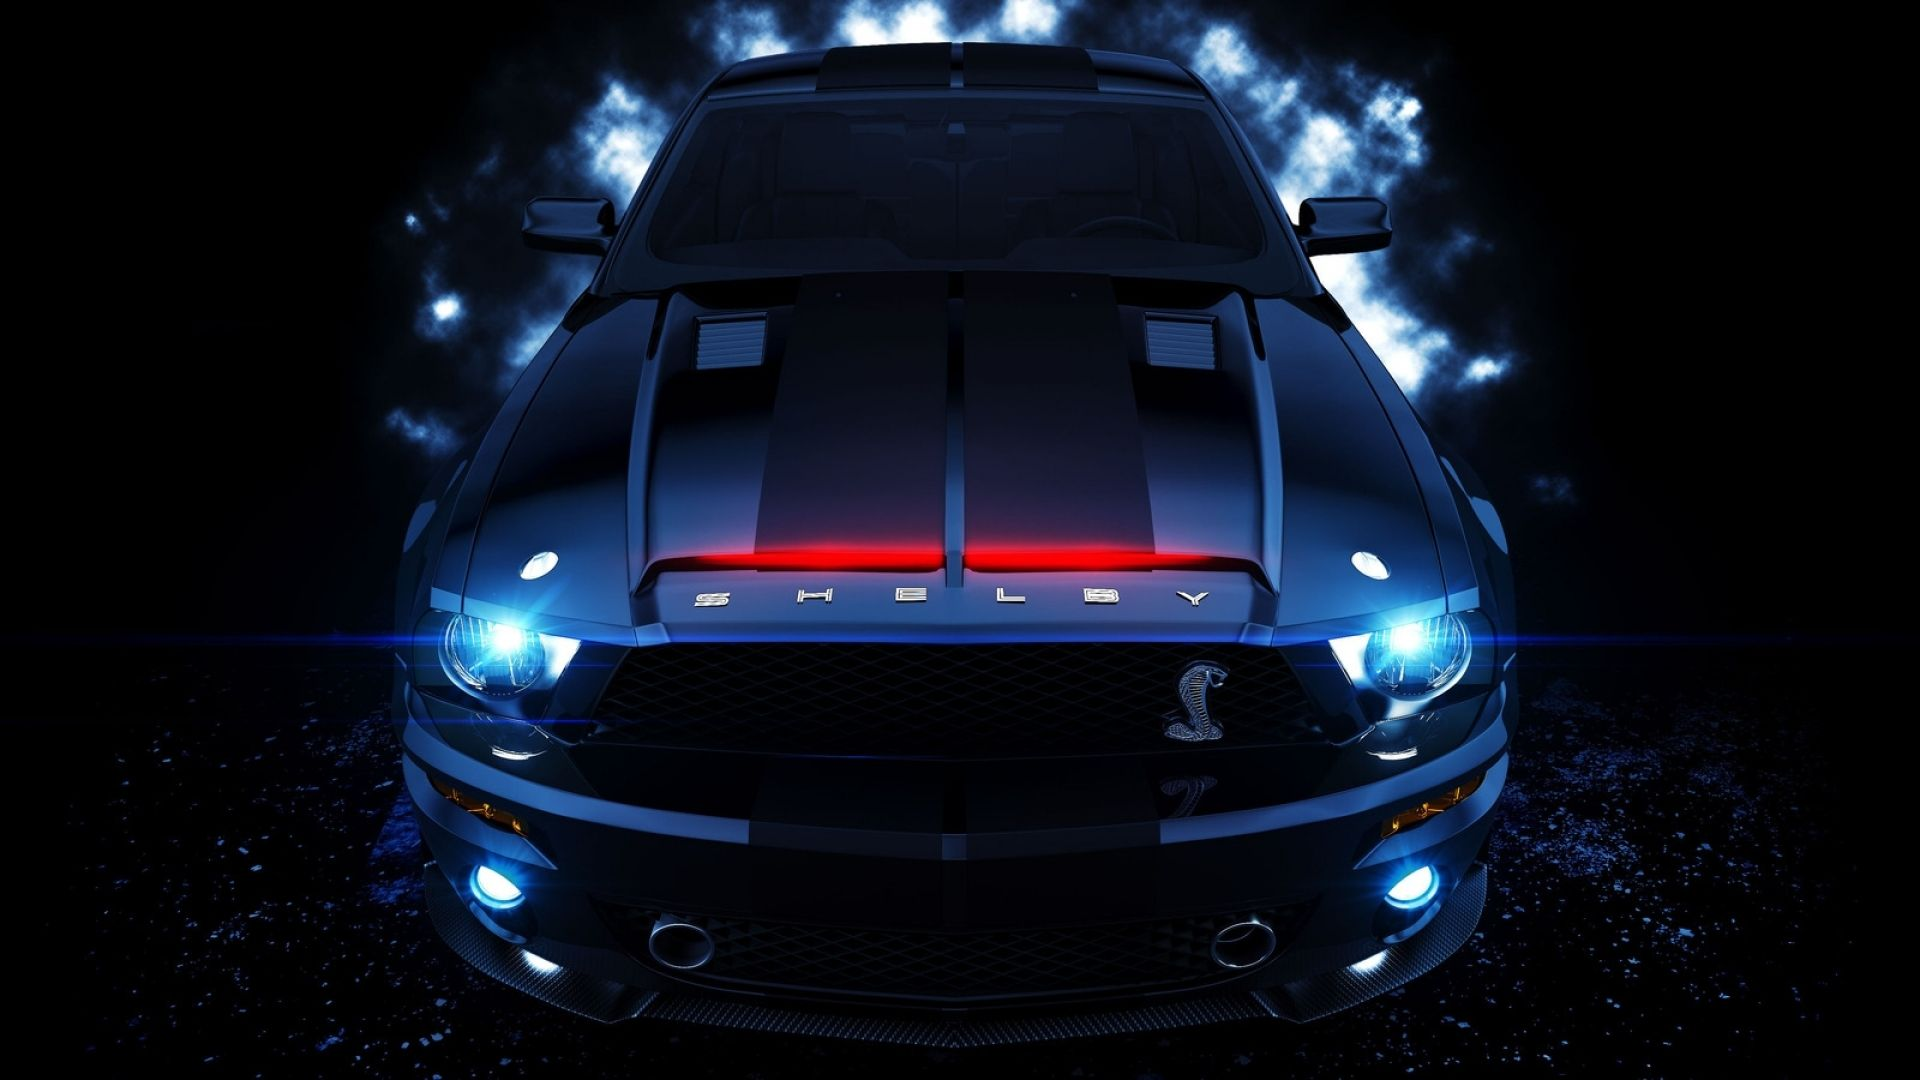 images of a mustang